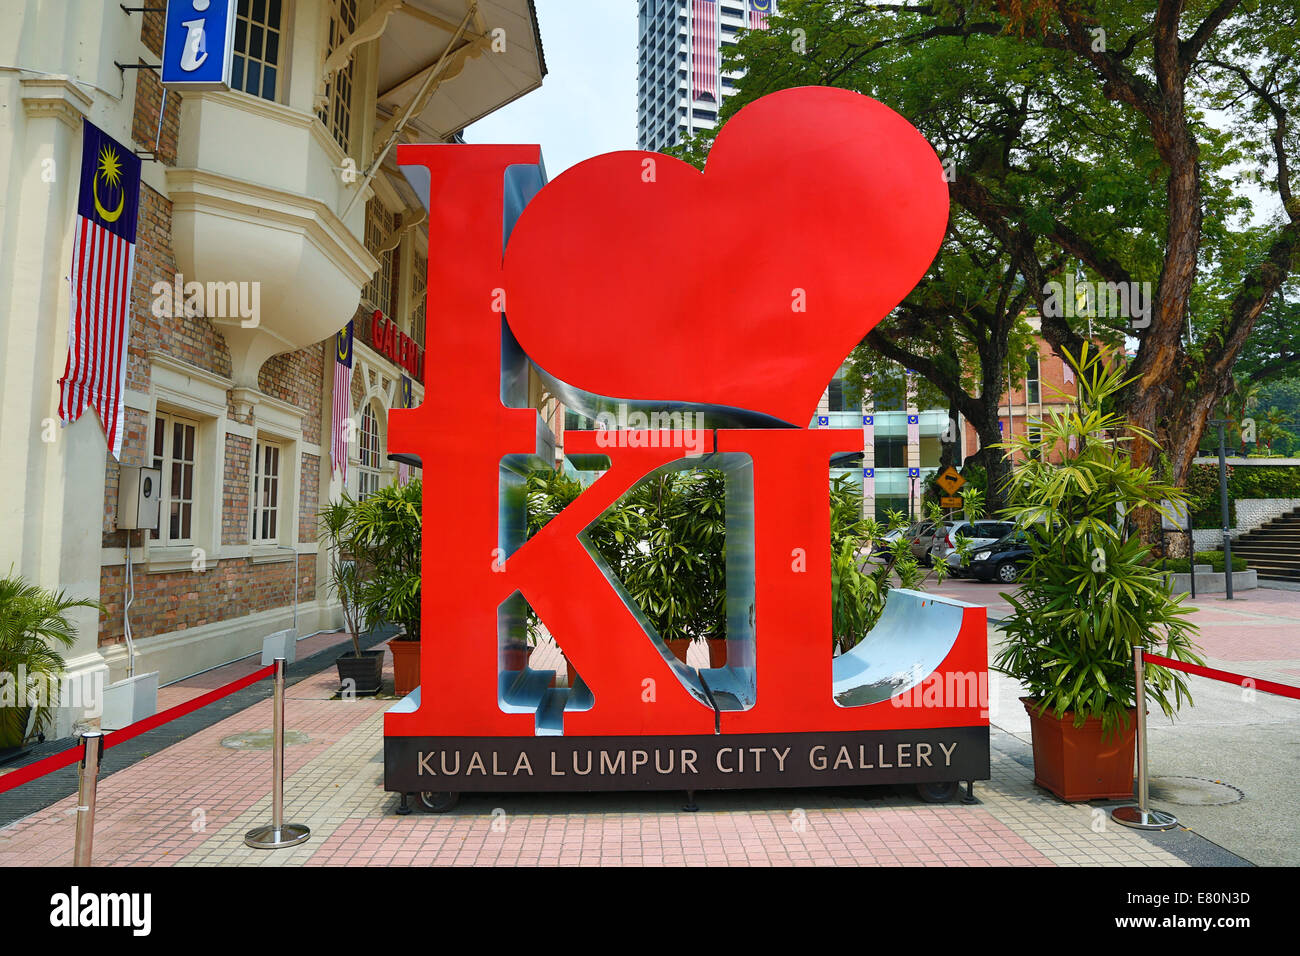 Red heart in the I love KL ststue outside the Kuala Lumpur City Gallery in Kuala Lumpur, Malaysia - Stock Image